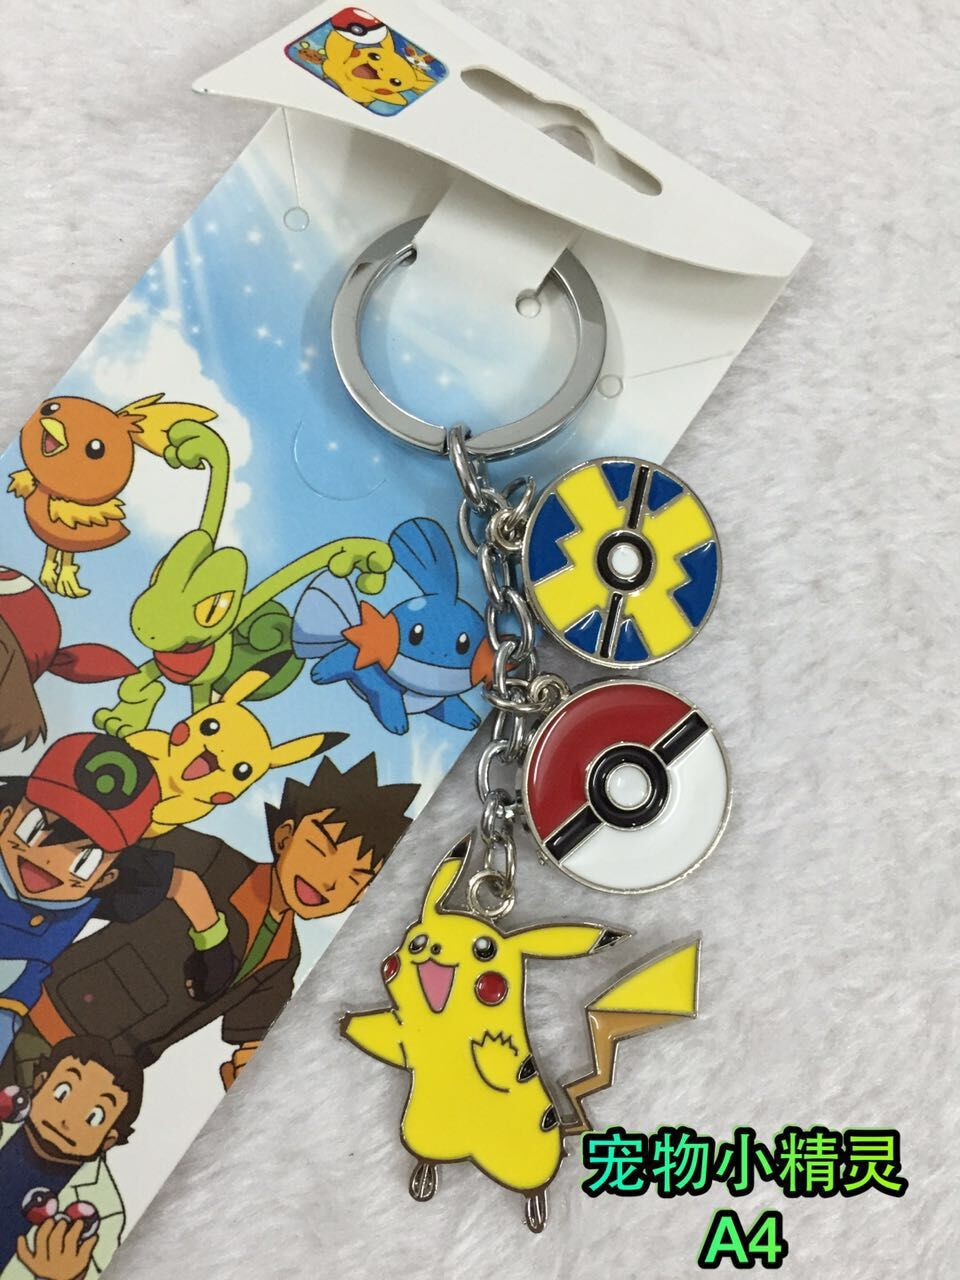 US $3 42 OFF Anime Pocket Monsters Pikachu Keychain Kartun Pocket Rakasa Ornamen Kalung Cincin Lucu Hadiah Natal Model Mainan Pinggiran Model